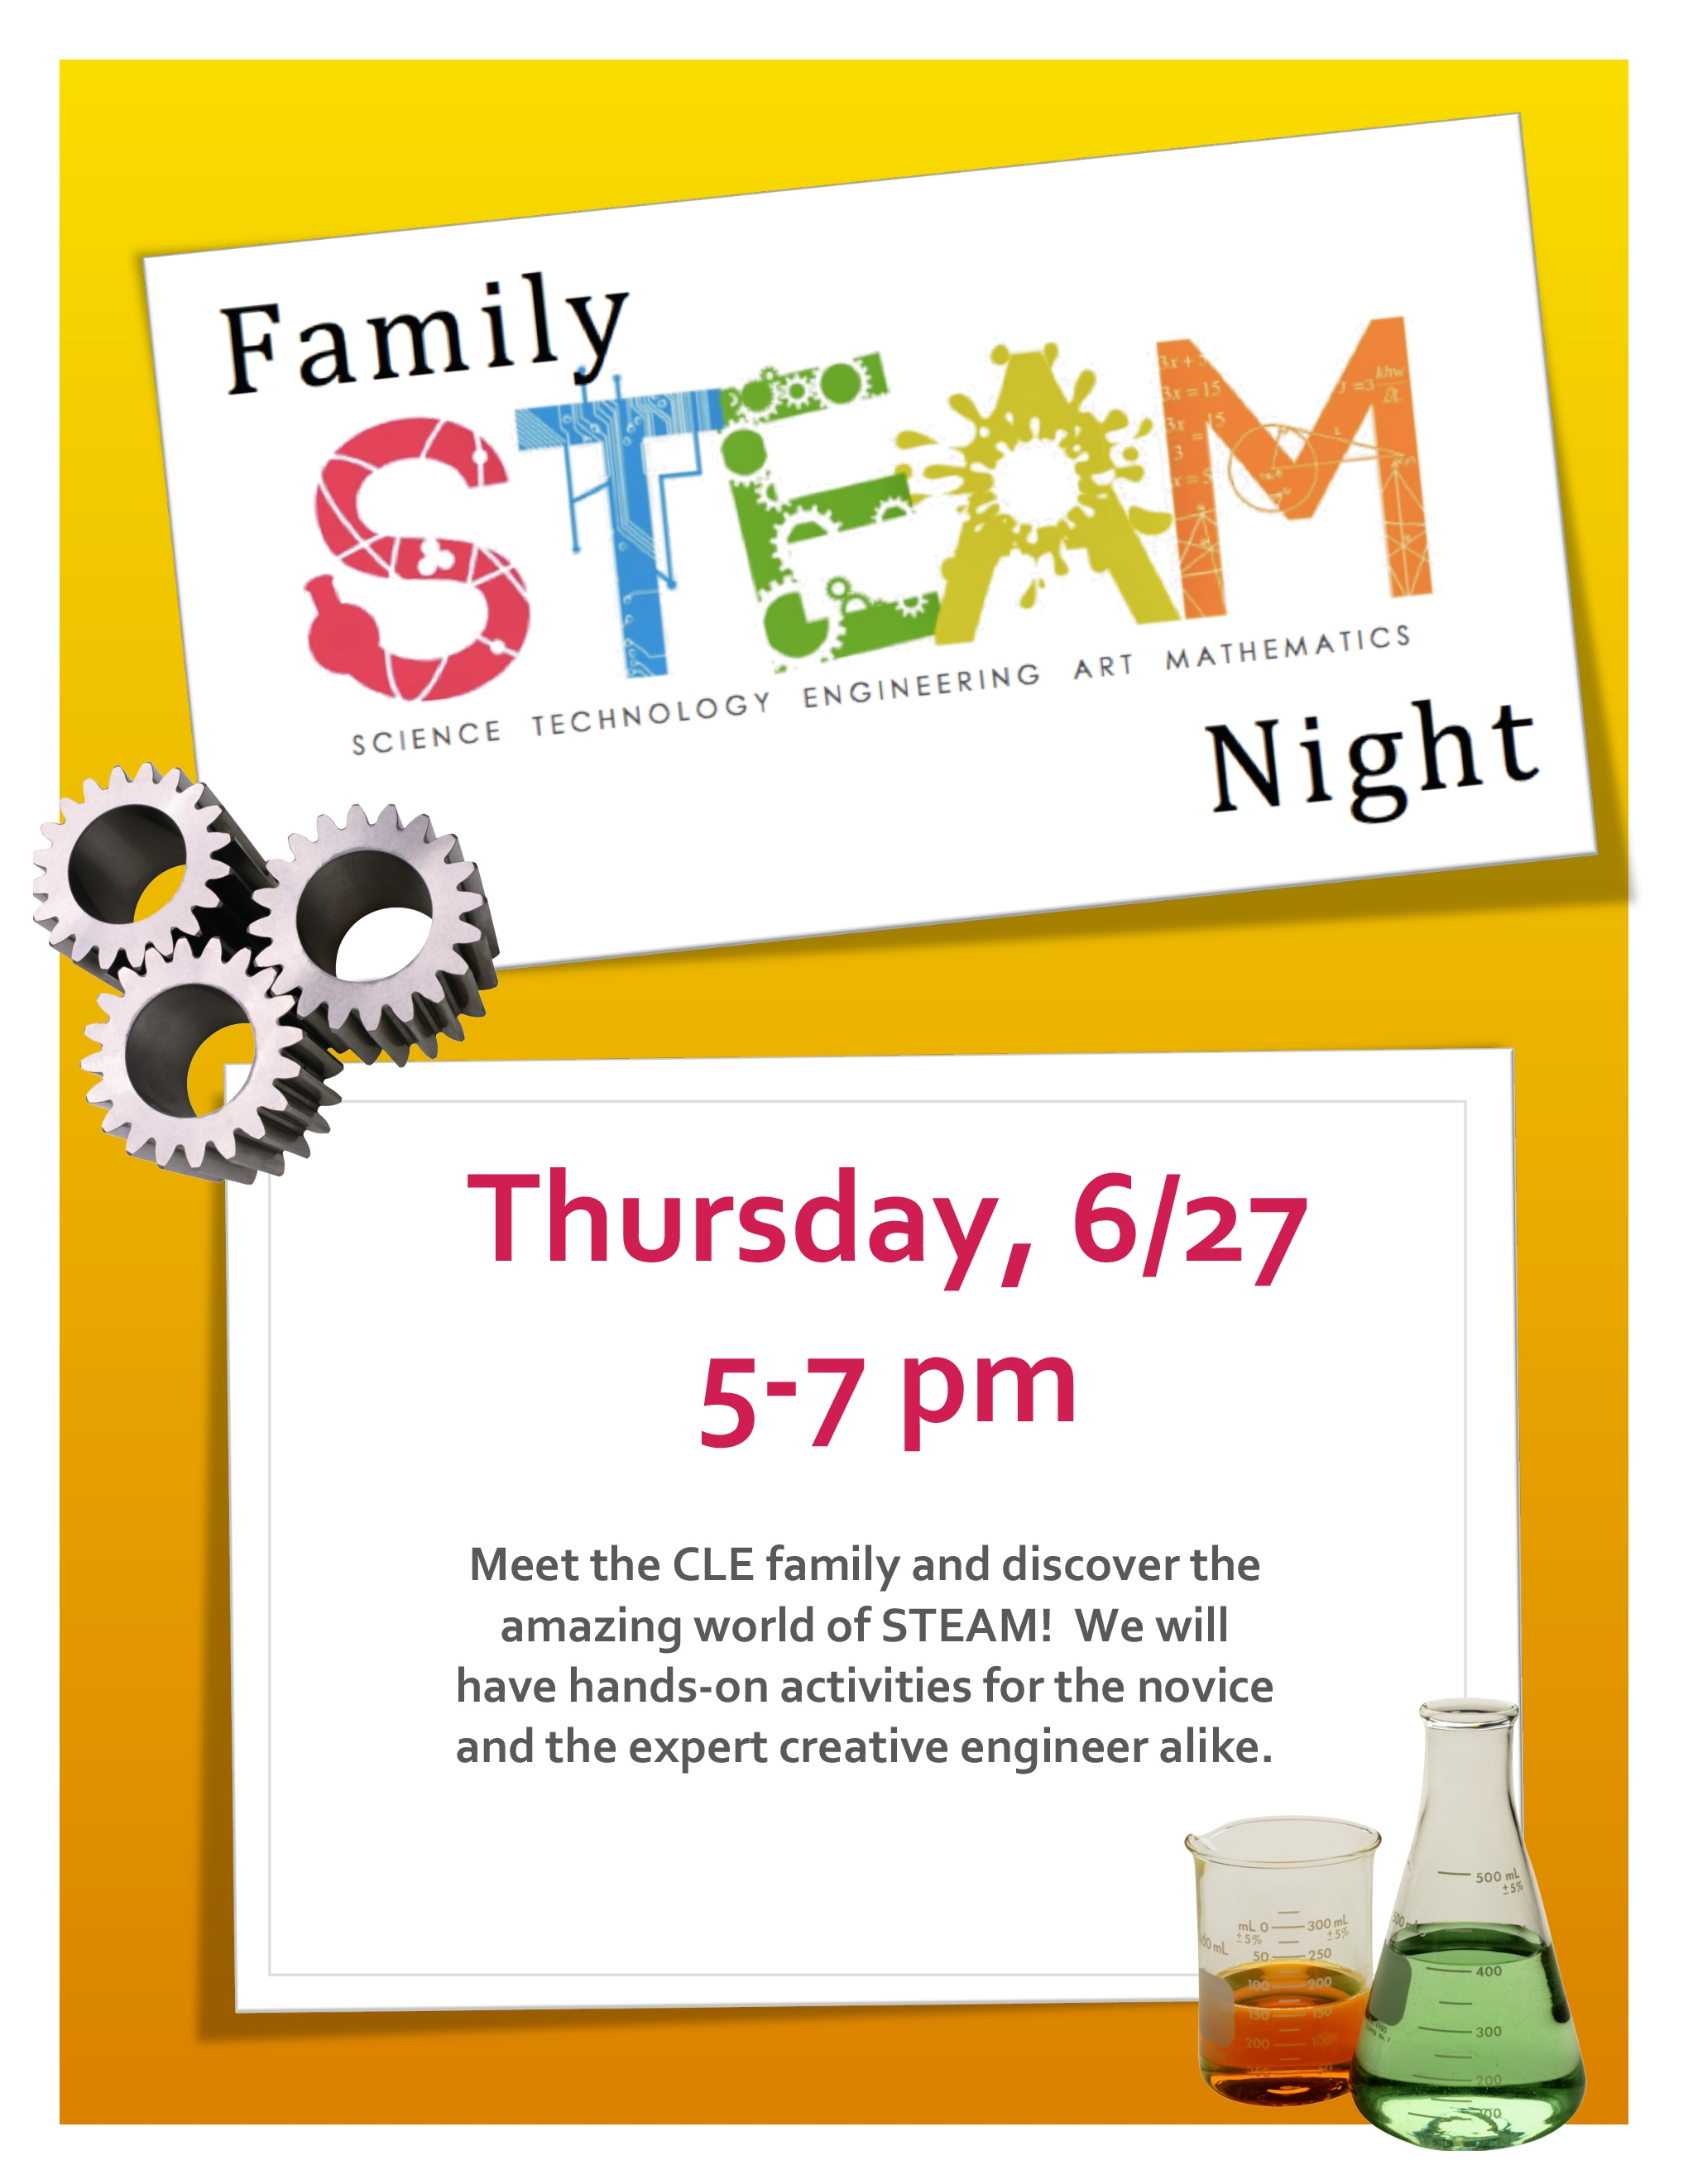 family steam night image 1.jpg